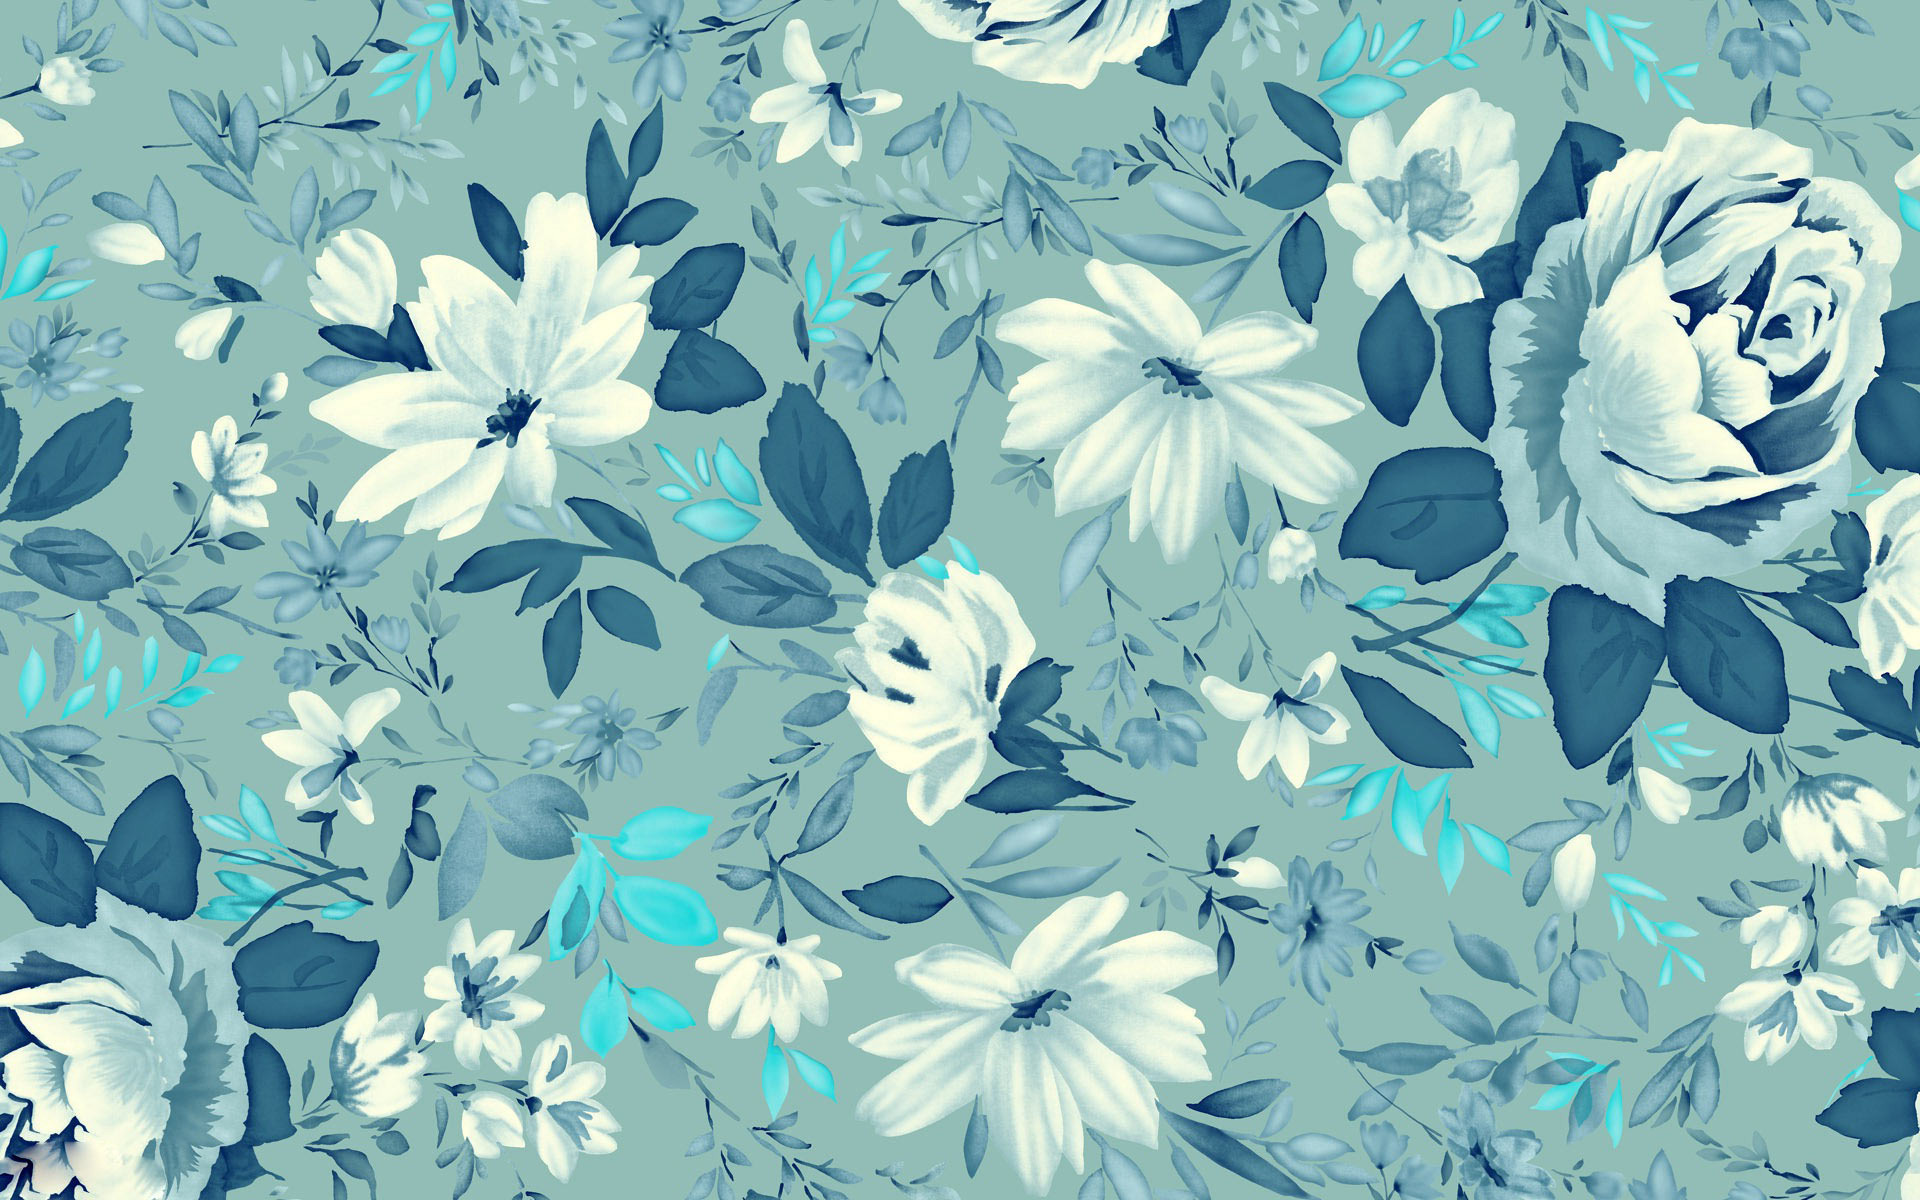 File Name 803057 Awesome Floral Pattern HD Wallpaper Download 1920x1200